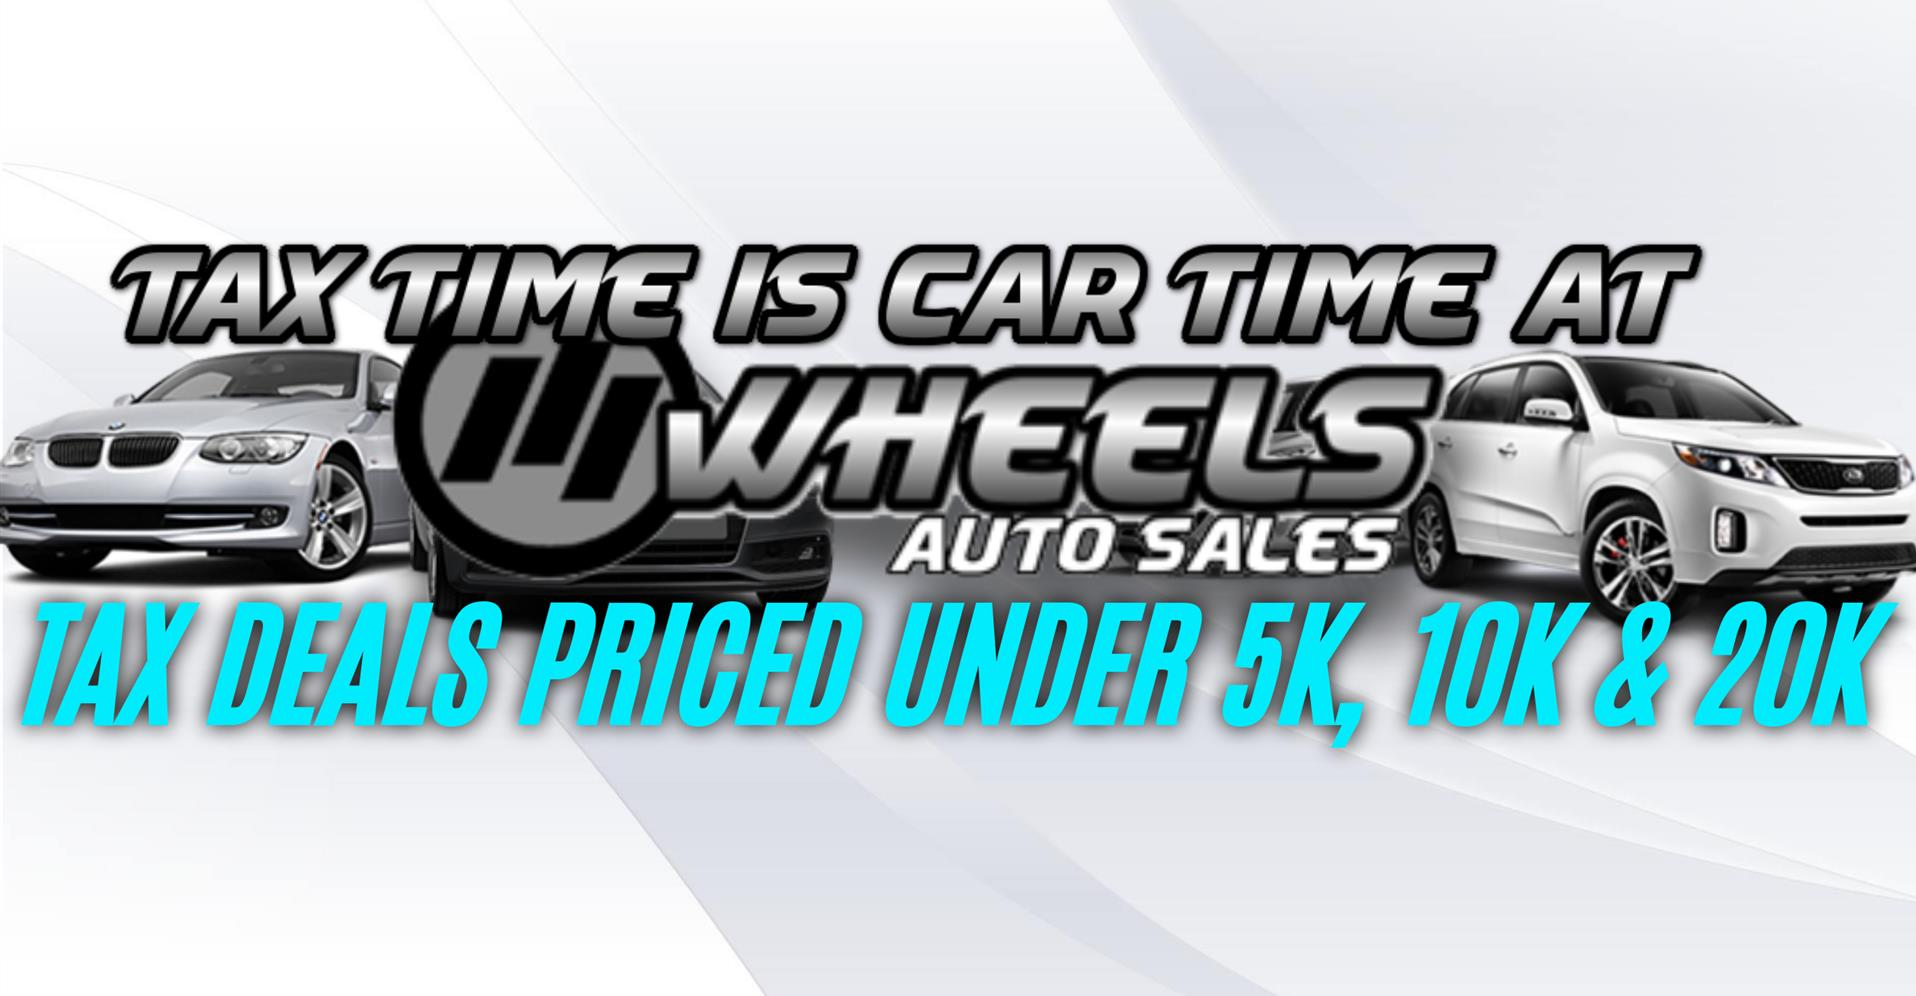 Wheels Auto Sales Knoxville TN | New & Used Cars Trucks Sales & Service